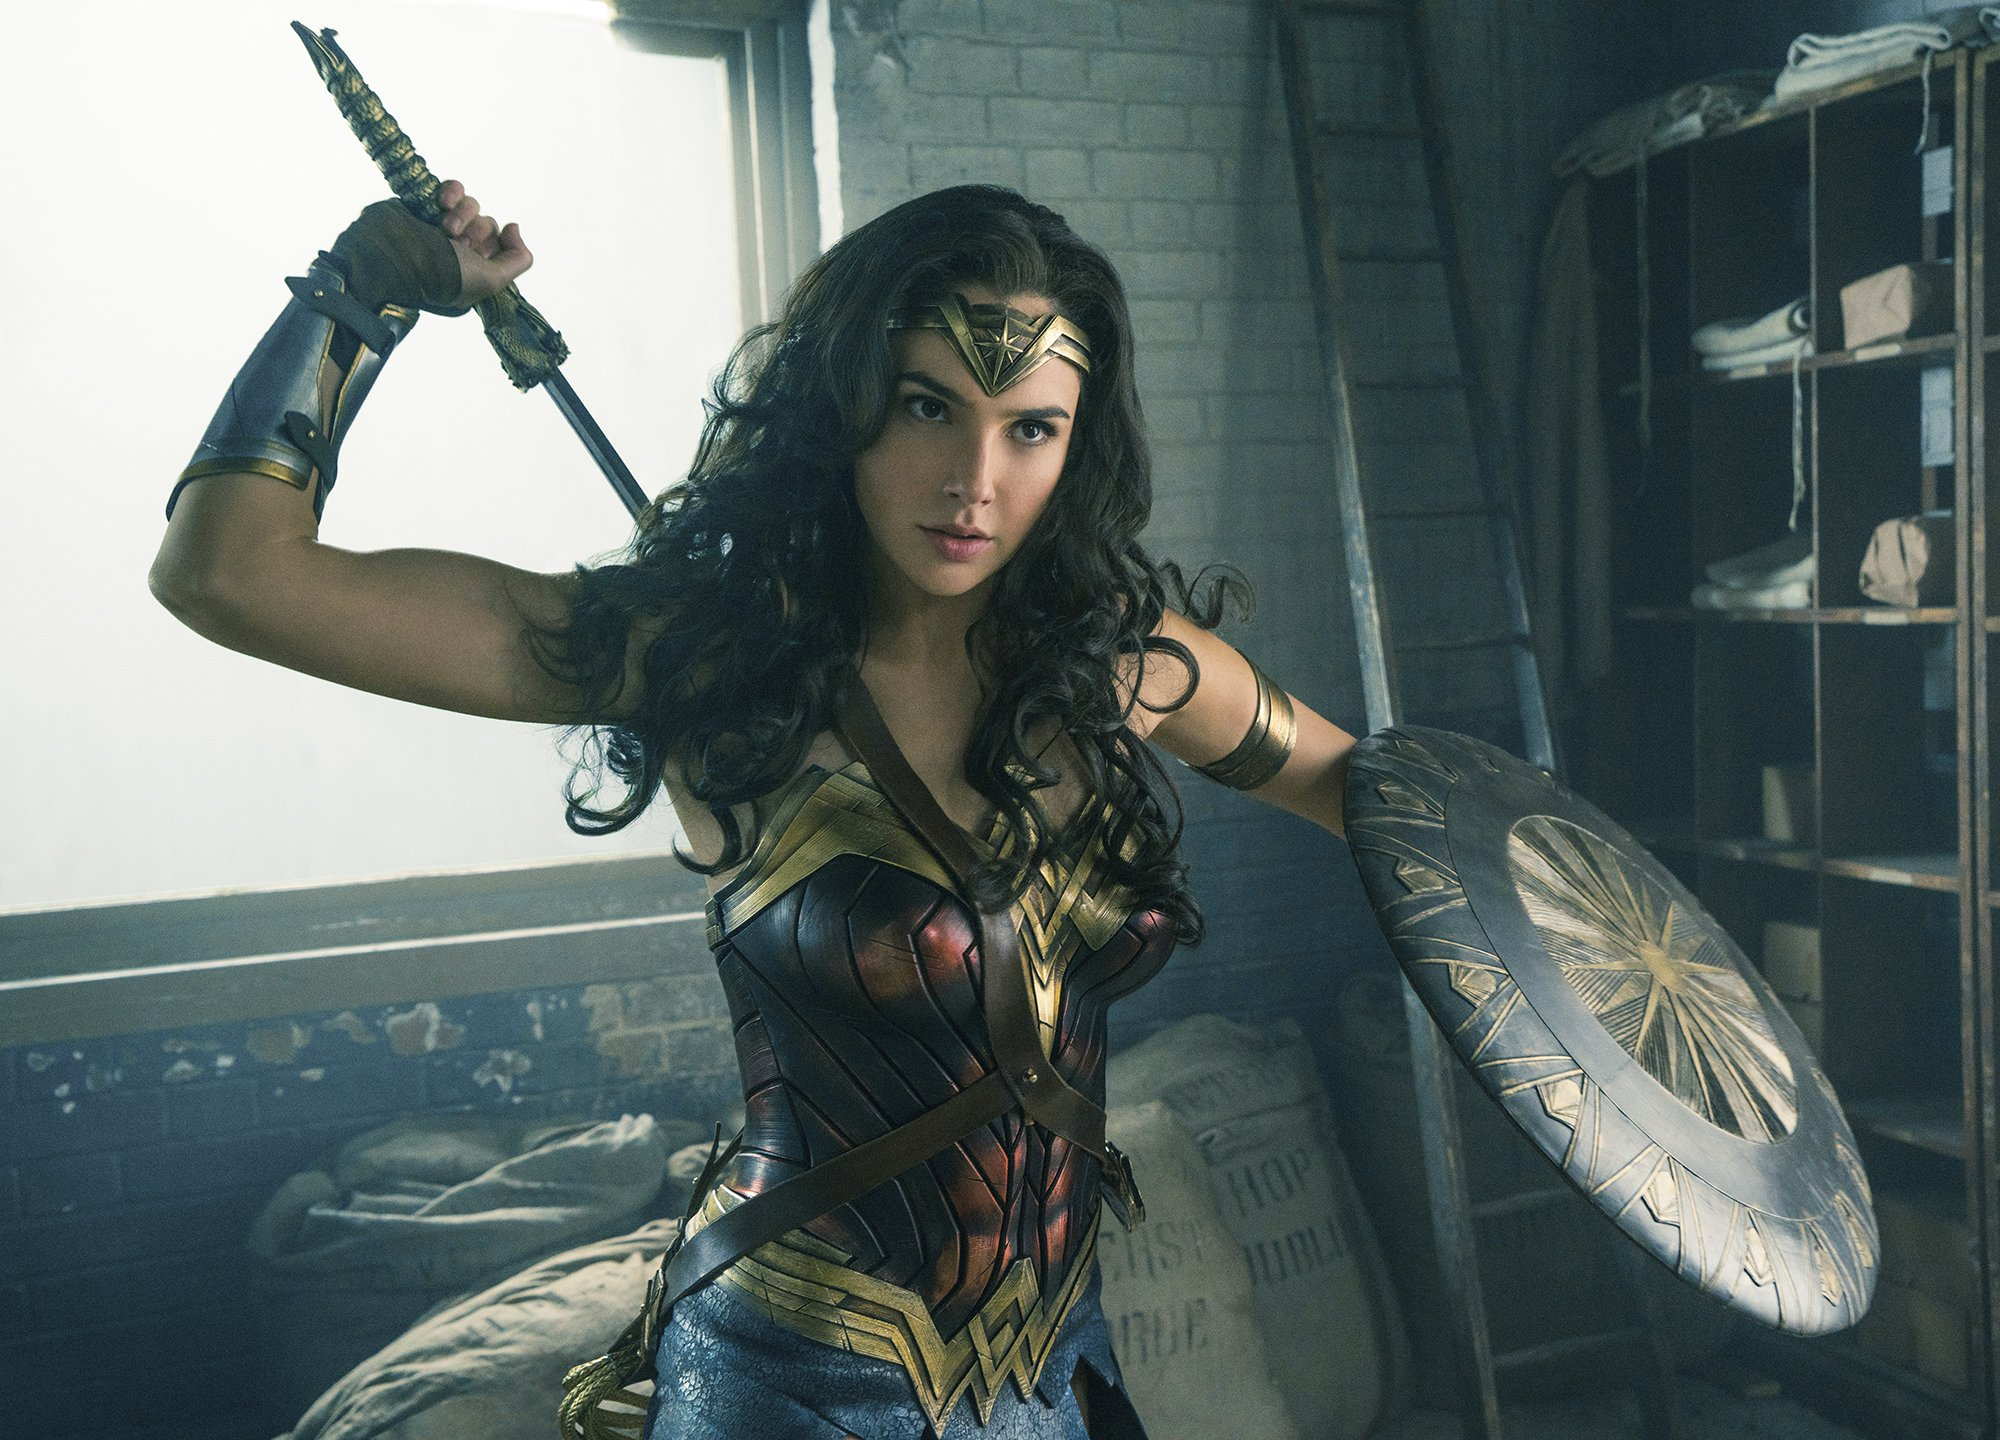 Tahun Depan Film Wonder Woman 2 Dirilis